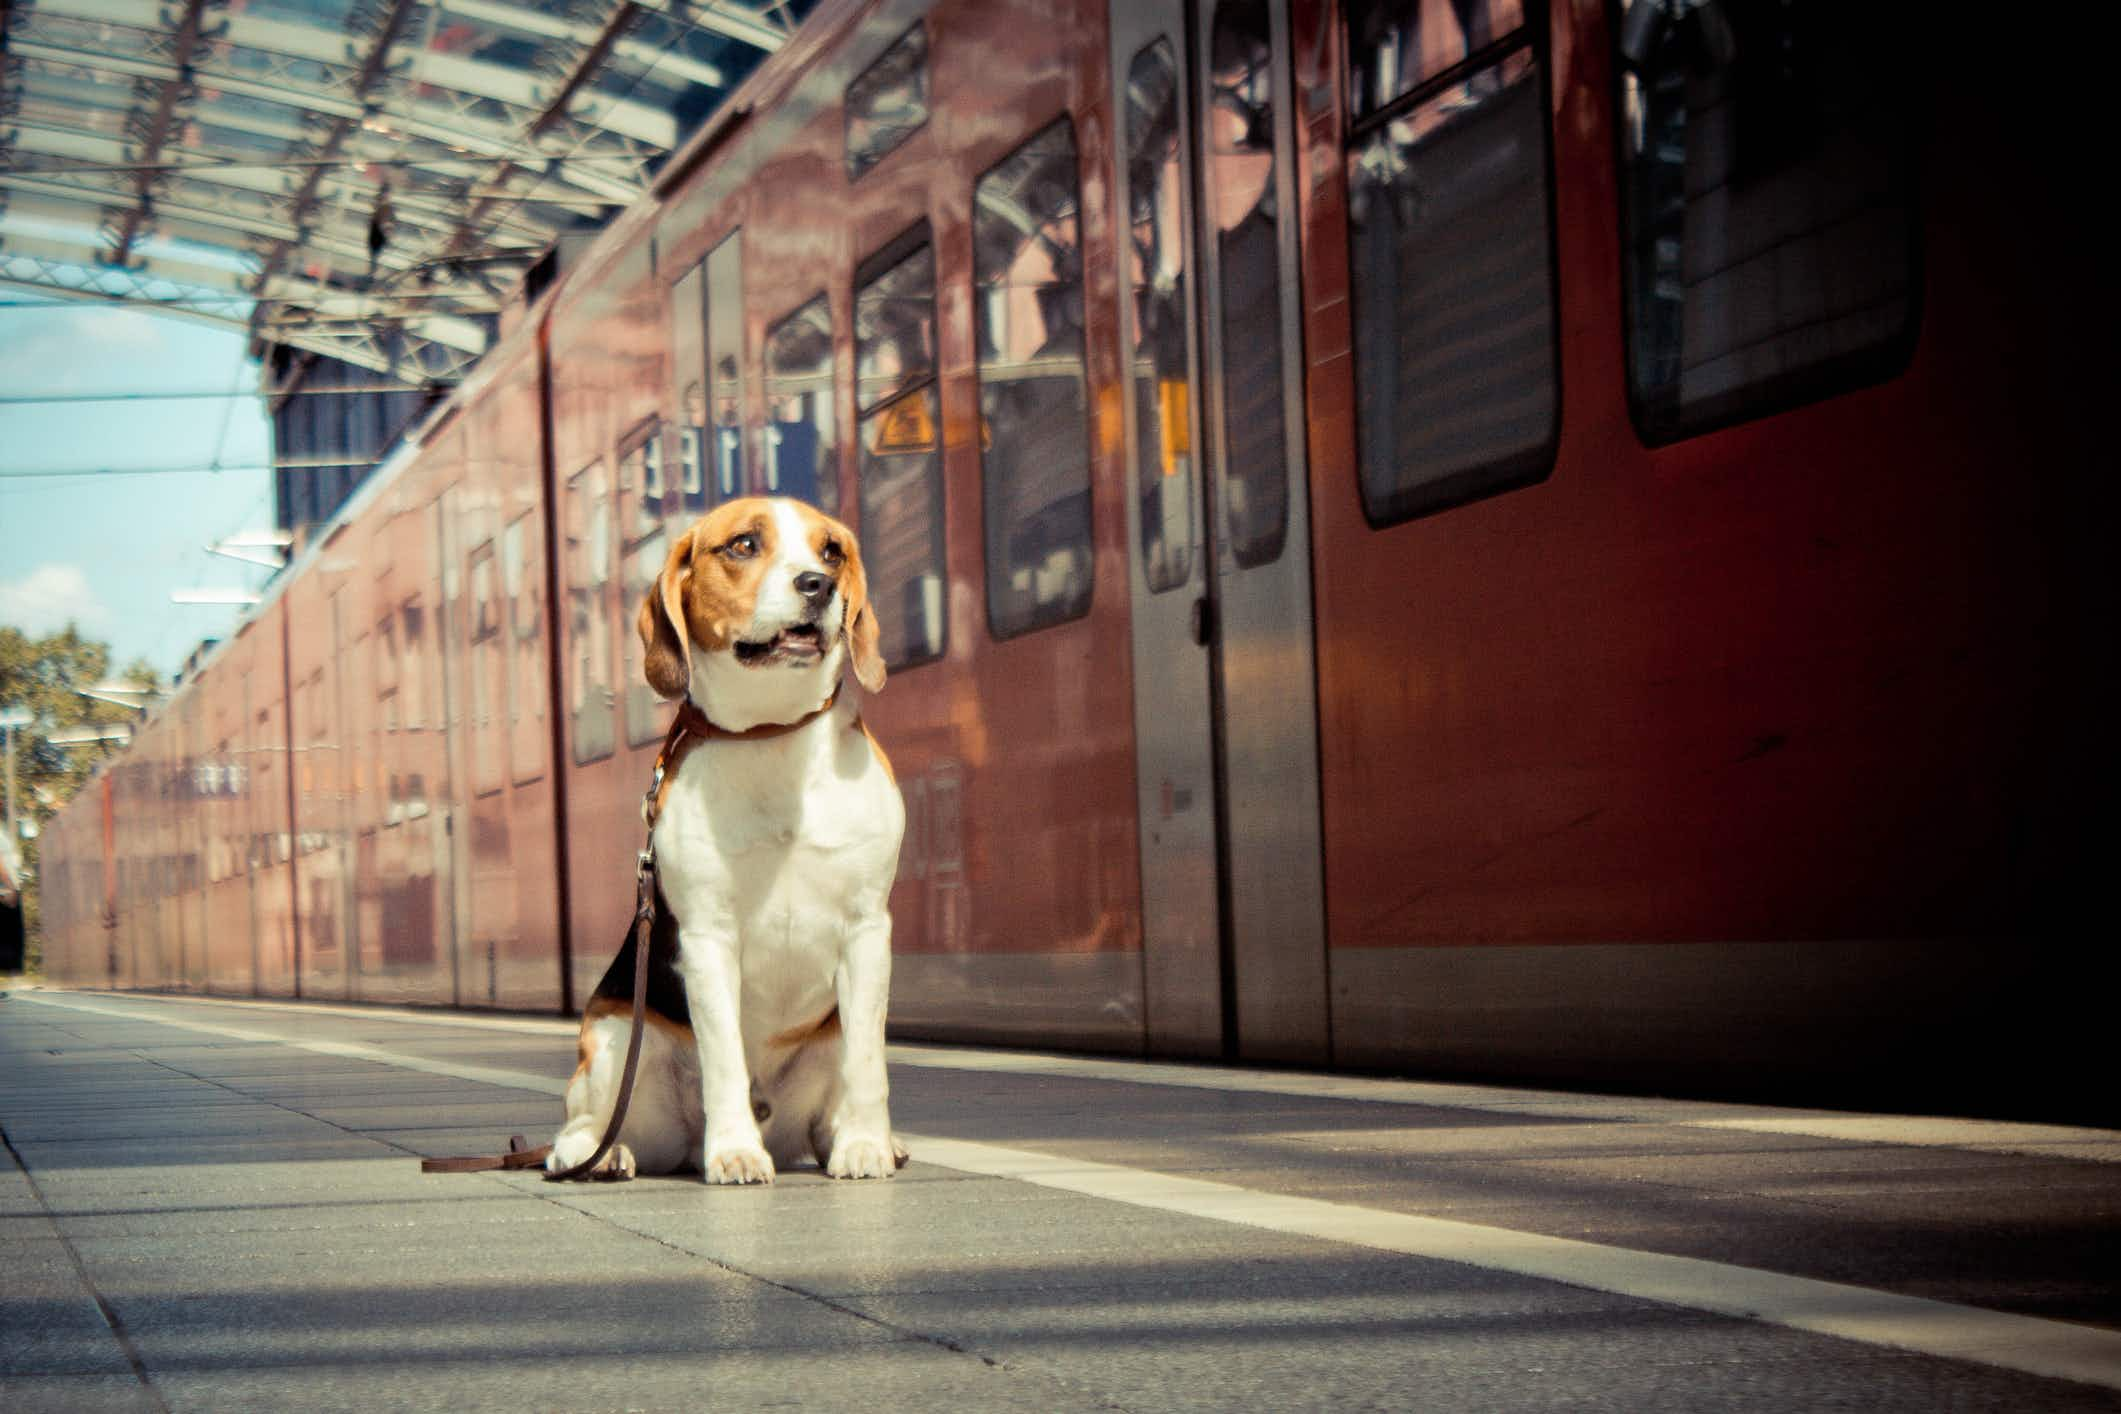 Paris has gone to the dogs as large pooches can now travel on trains (once they have their own ticket)